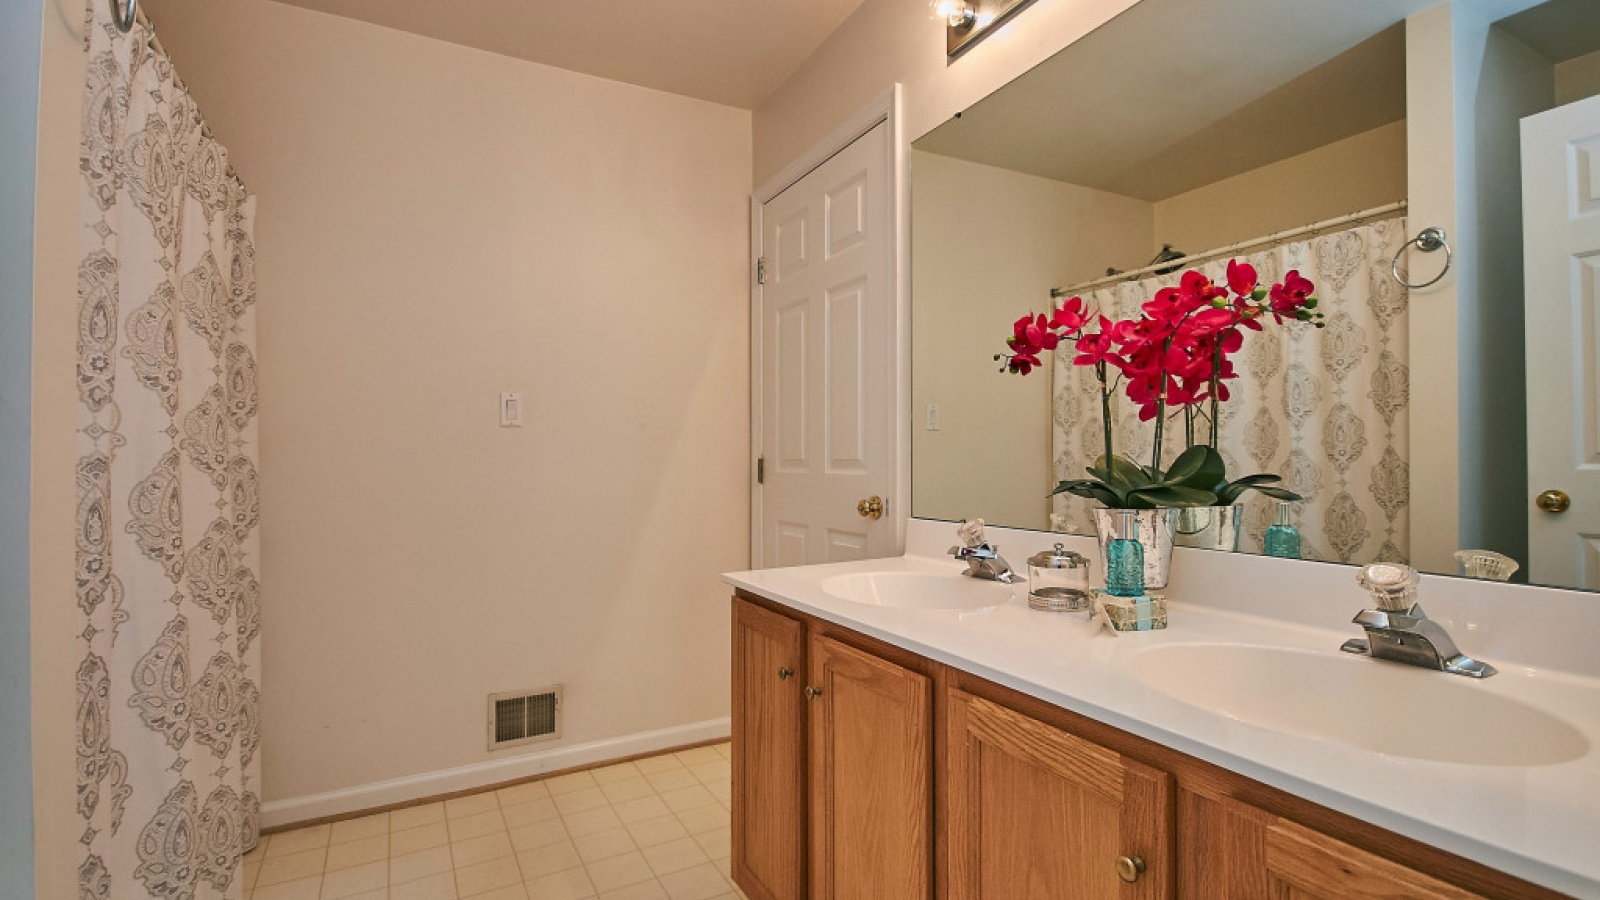 2 Bedrooms, Townhouse, For sale, Tiger Lily Circle, 2 Bathrooms, Listing ID 1072, Woodbridge, United States, 22192,